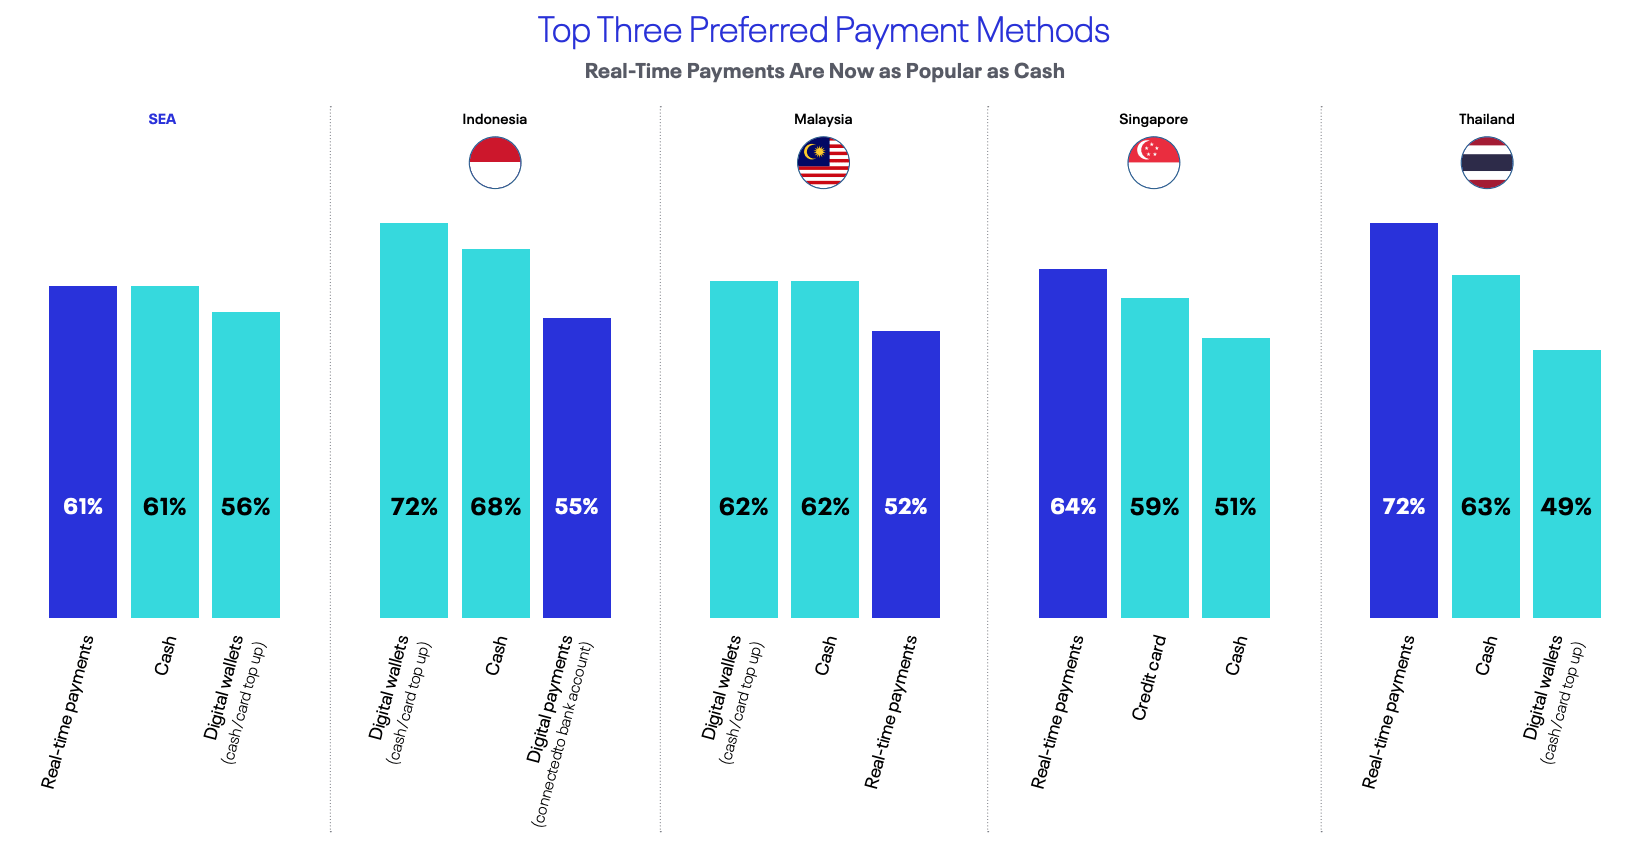 Top three preferred payment methods in key Southeast Asian markets, Source- Real-Time Goes Mainstream, ACI Worldwide, 2021